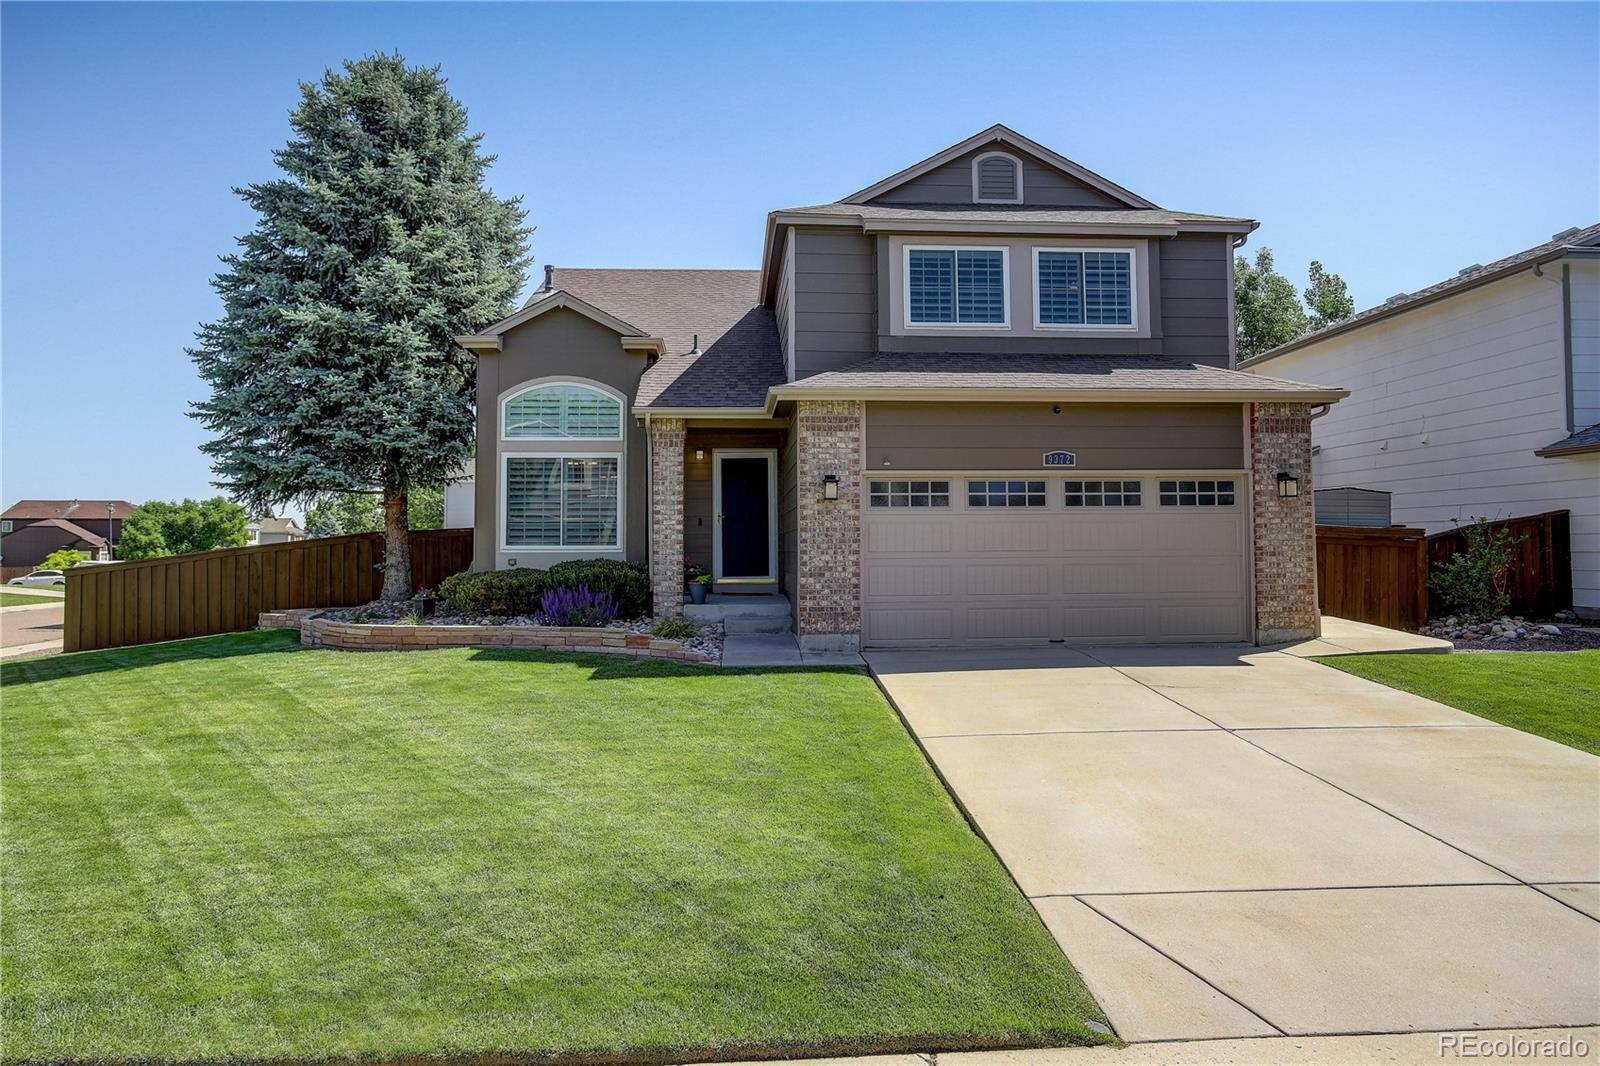 9372 Weeping Willow Court, Highlands Ranch, CO 80130 - #: 3609963